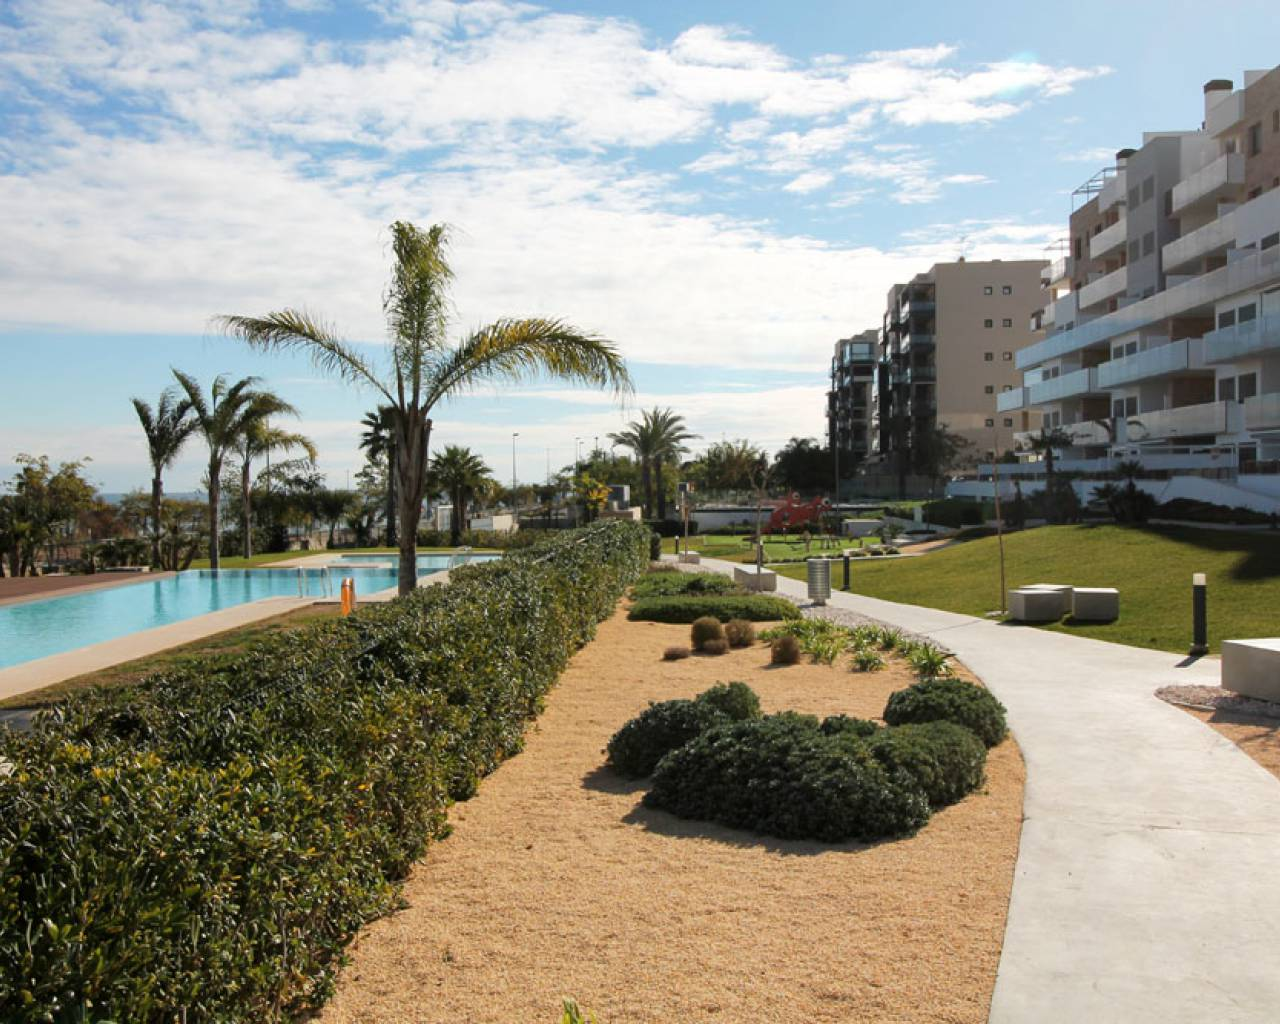 Appartement · Location vacances · Pilar de la Horadada · Mil Palmeras